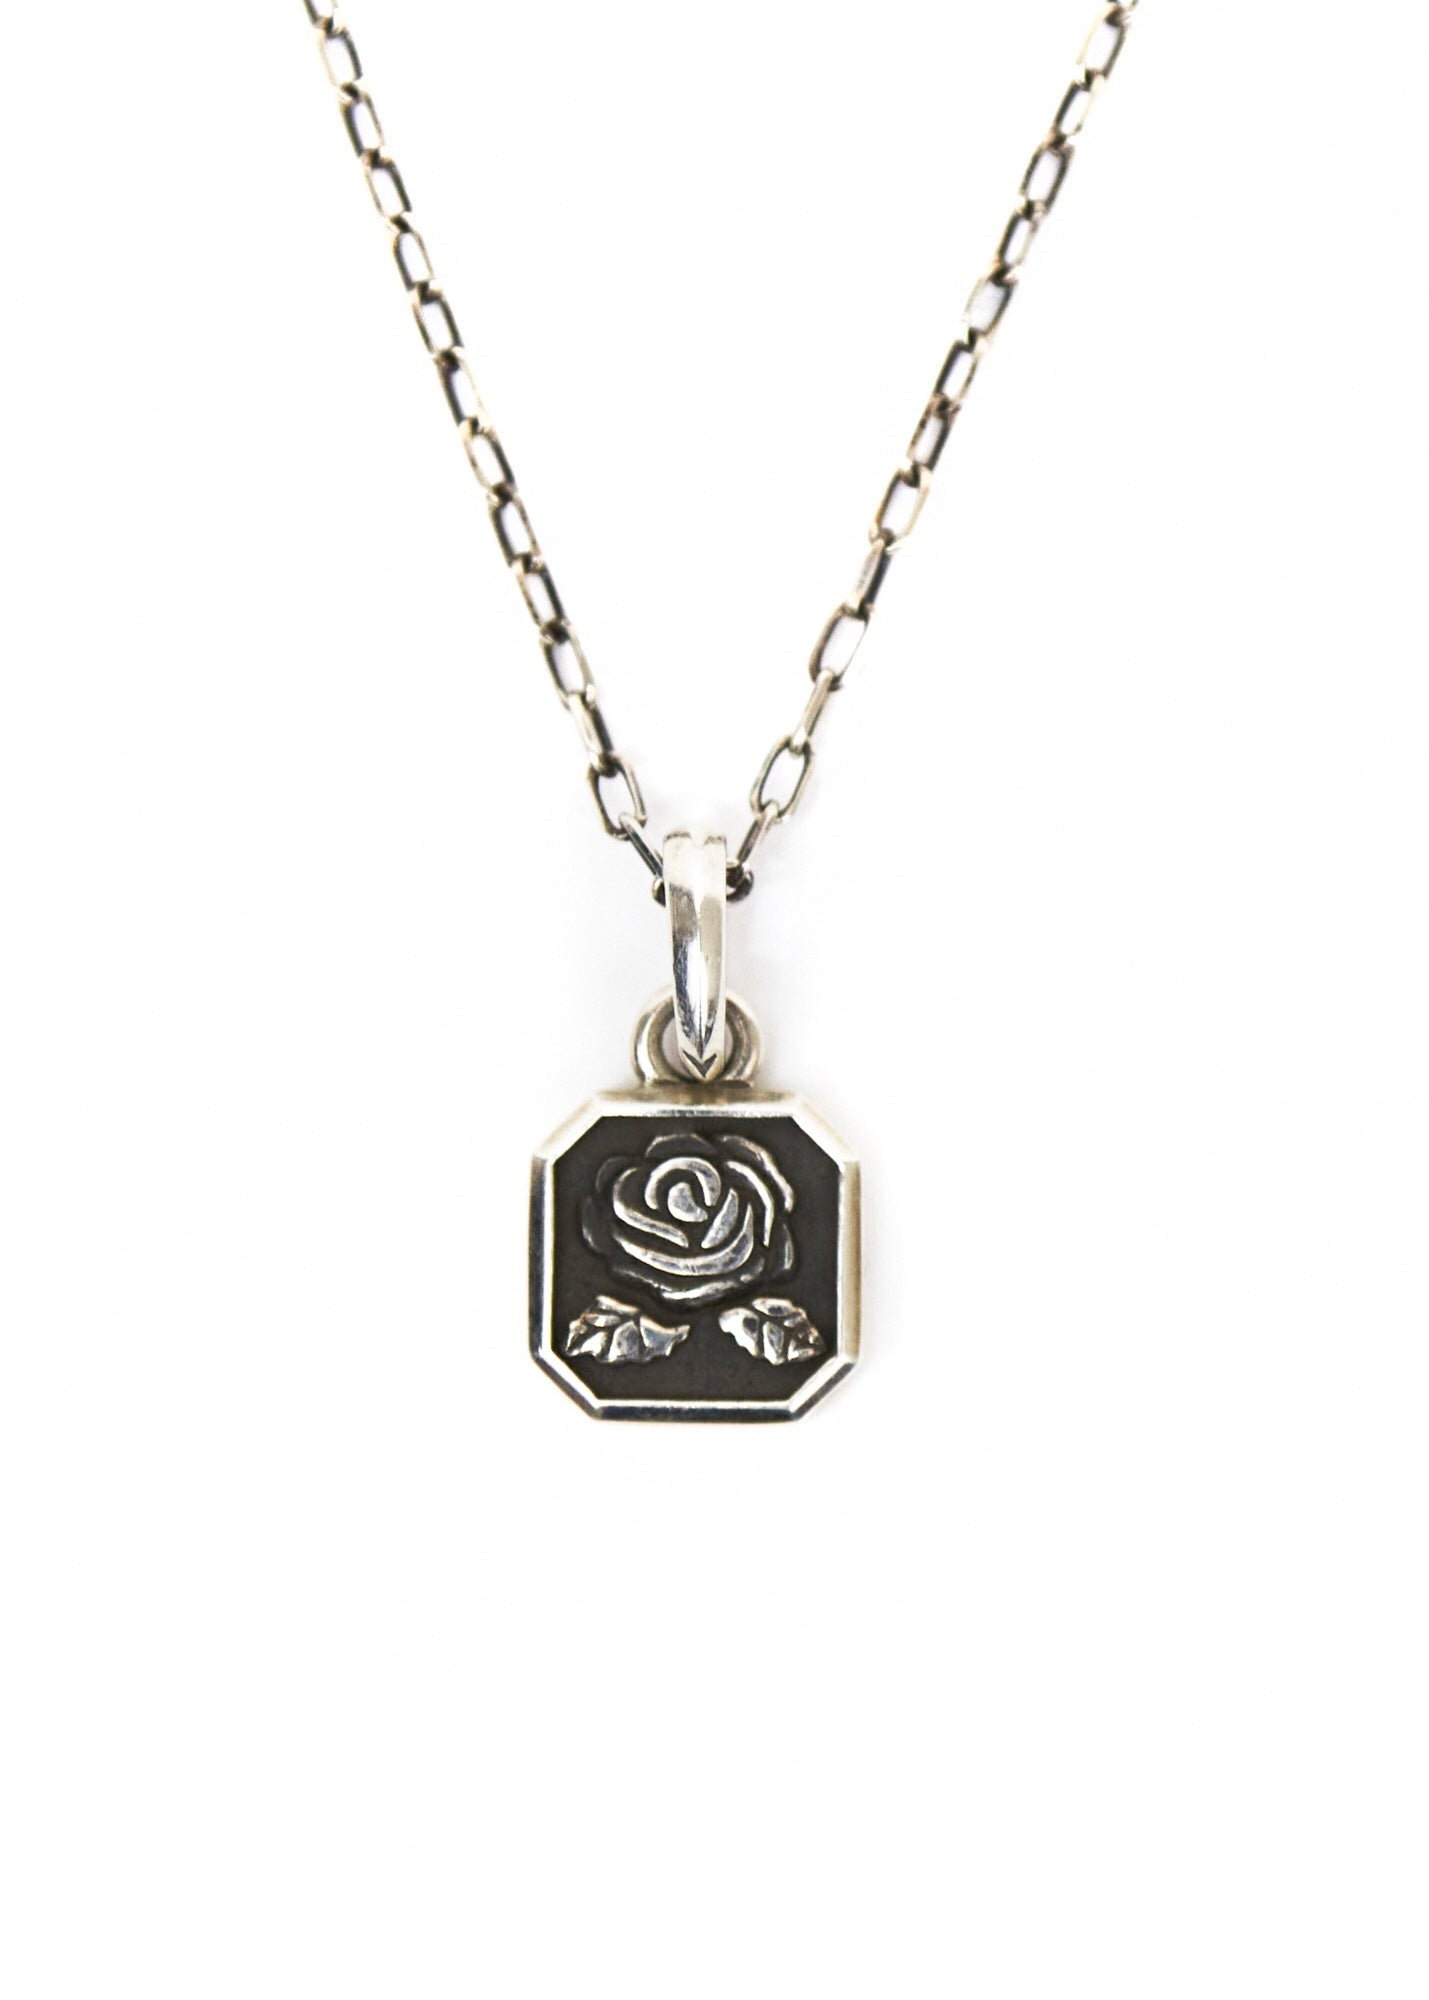 Rosebud Necklace Silver